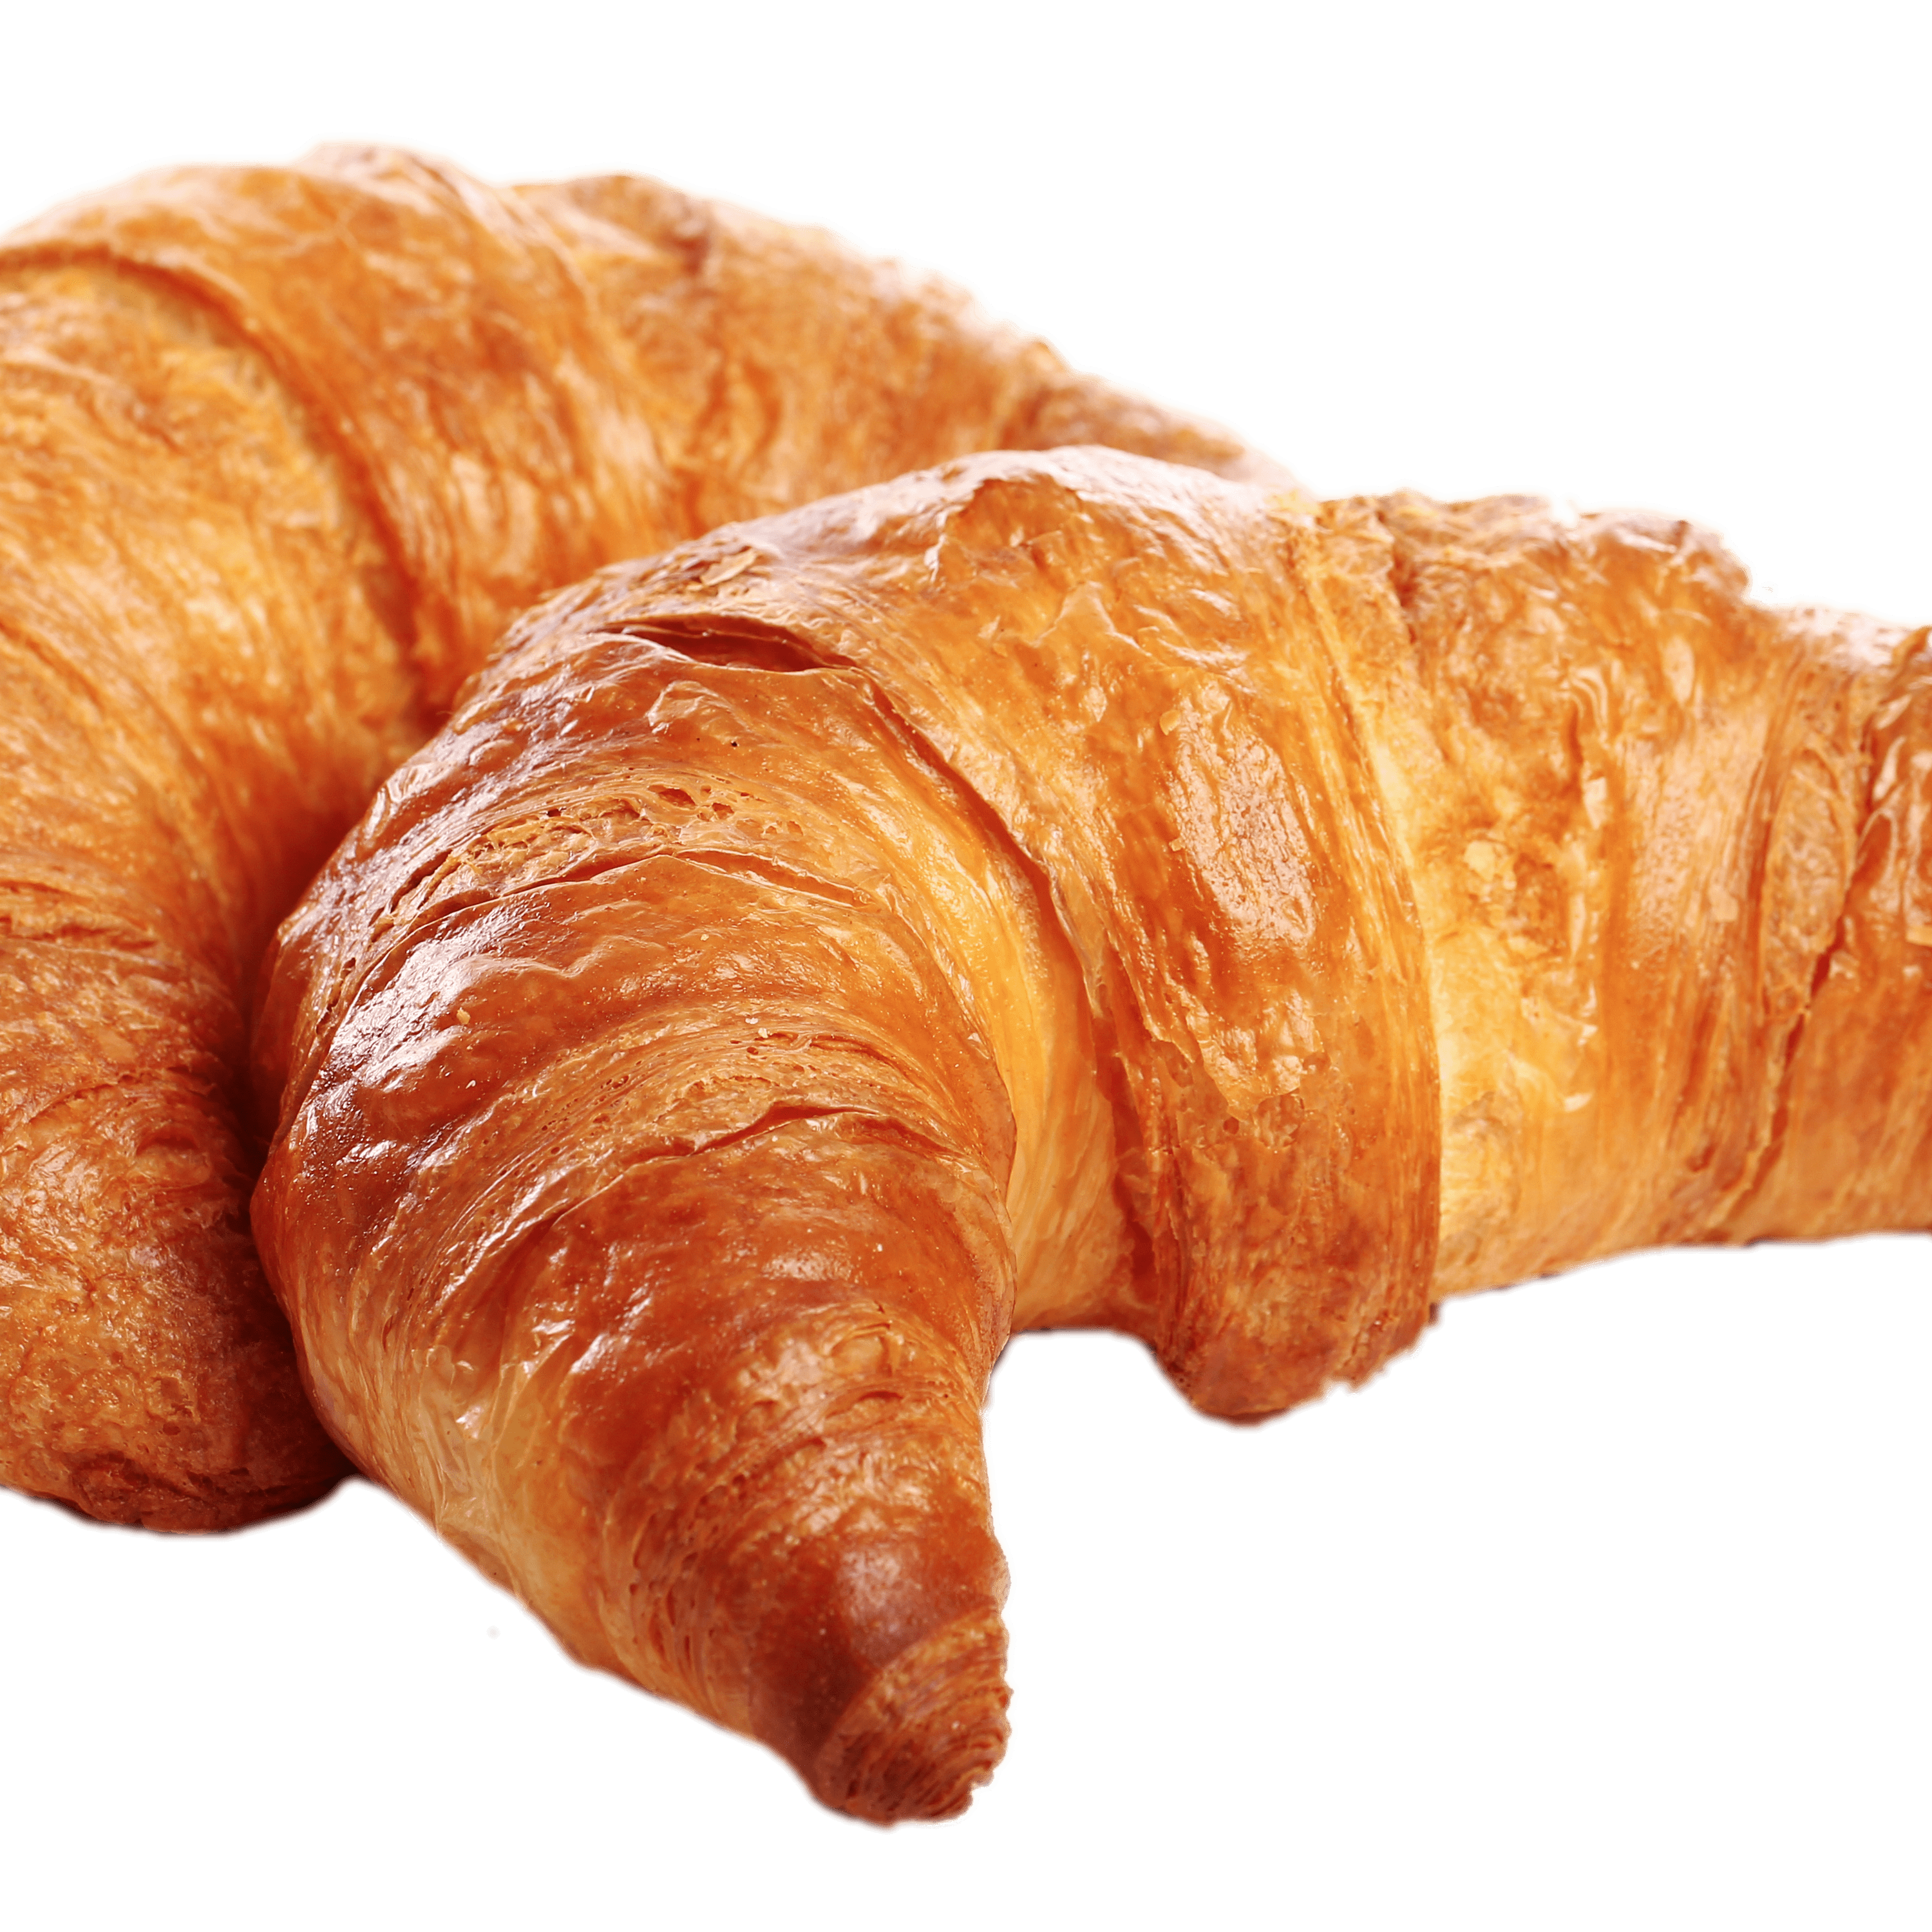 Free download of сRoissant PNG Icon